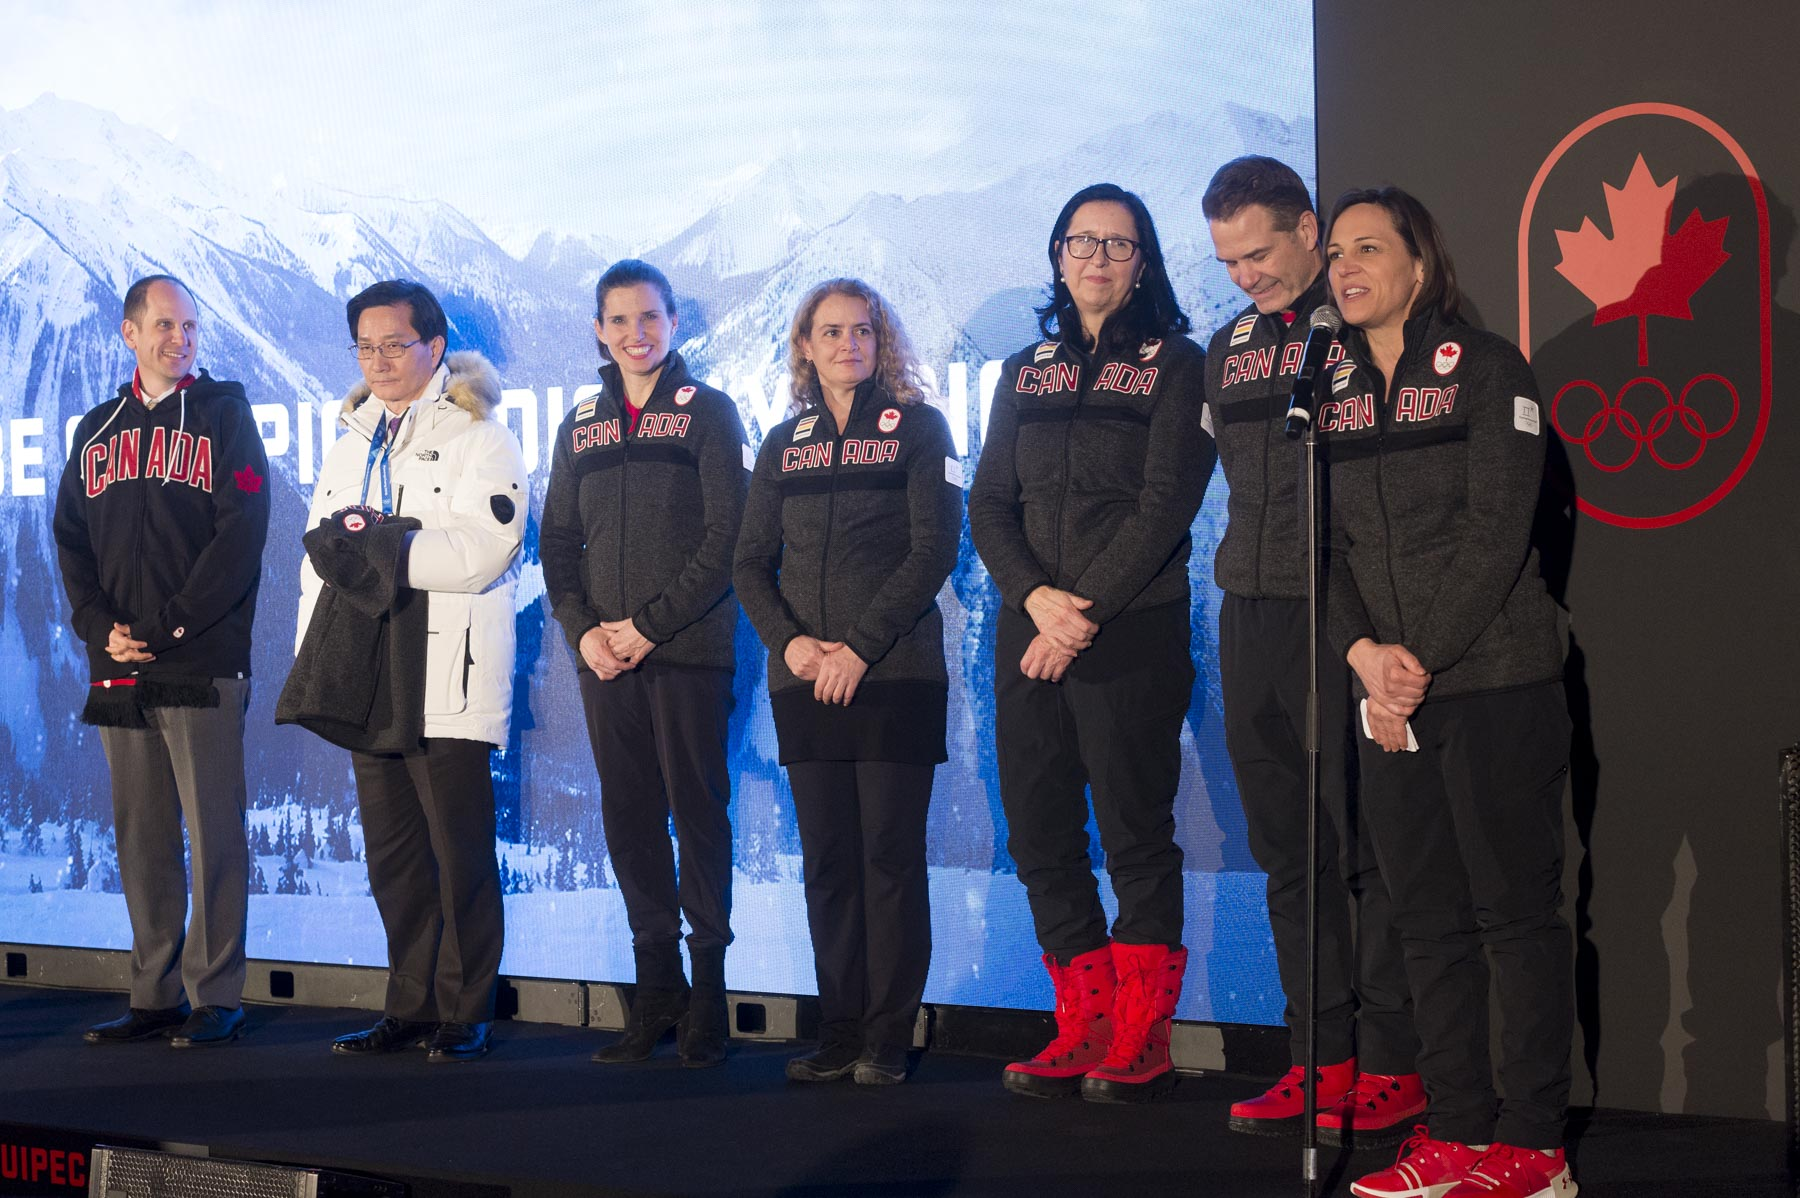 She was then invited to address families and friends of our Canadian athletes, representatives of national sports federations, and Canadian Olympic Committee executive members and volunteers.